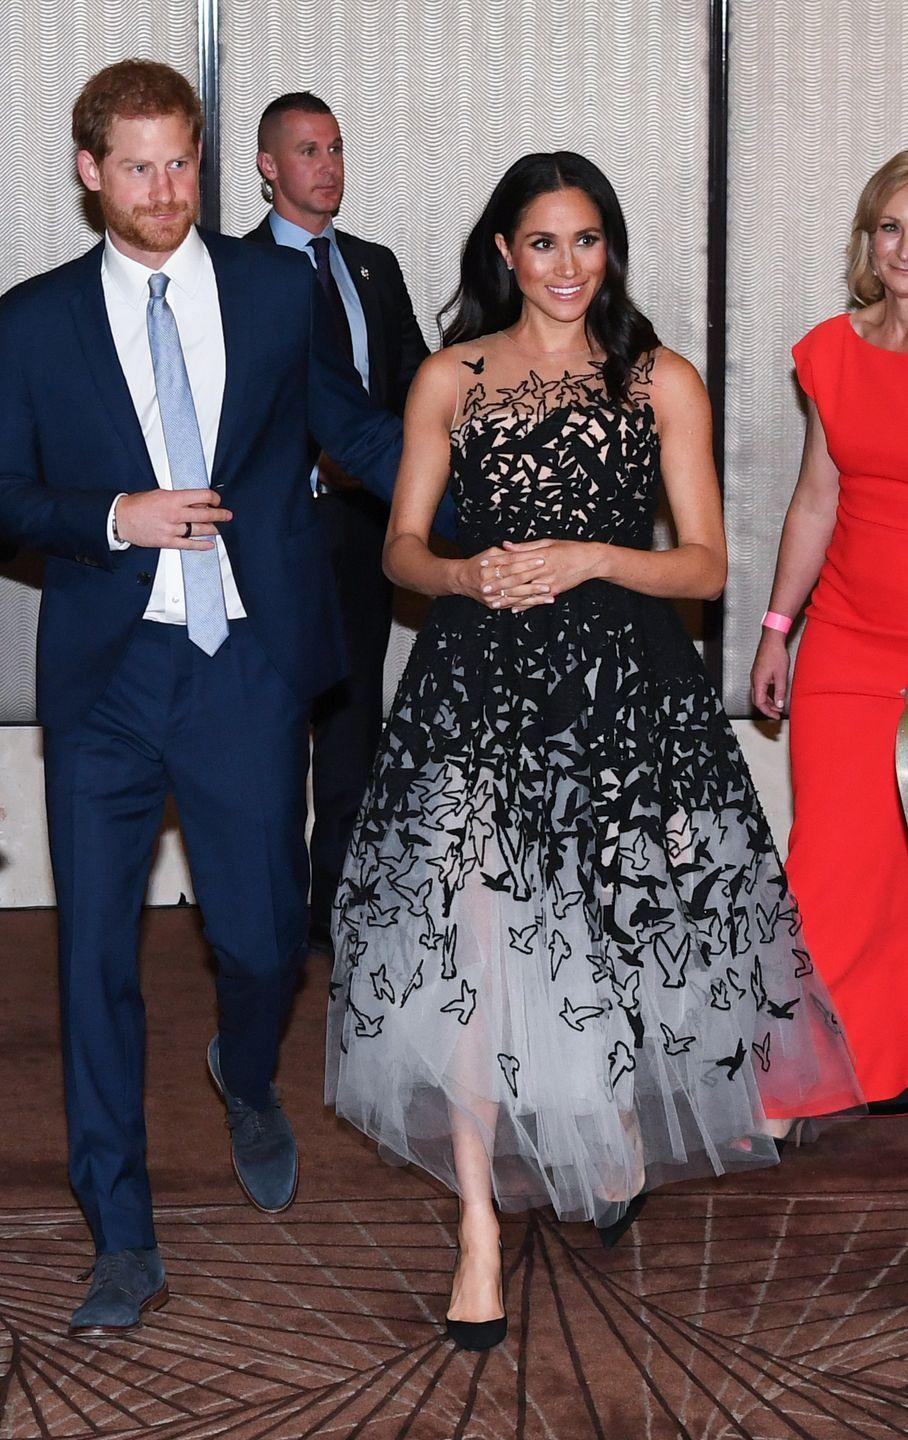 """<p>Back in Sydney after a whirlwind day in Tonga, Harry and Meghan changed into formal attire for an elegant evening at the Australian Geographic Society Awards. The Duchess <a href=""""https://www.townandcountrymag.com/style/fashion-trends/a24230198/meghan-markle-oscar-de-la-renta-gown-sydney-australia-royal-tour/"""" rel=""""nofollow noopener"""" target=""""_blank"""" data-ylk=""""slk:wore a black and white gown"""" class=""""link rapid-noclick-resp"""">wore a black and white gown</a> by Oscar de la Renta for the night. </p>"""